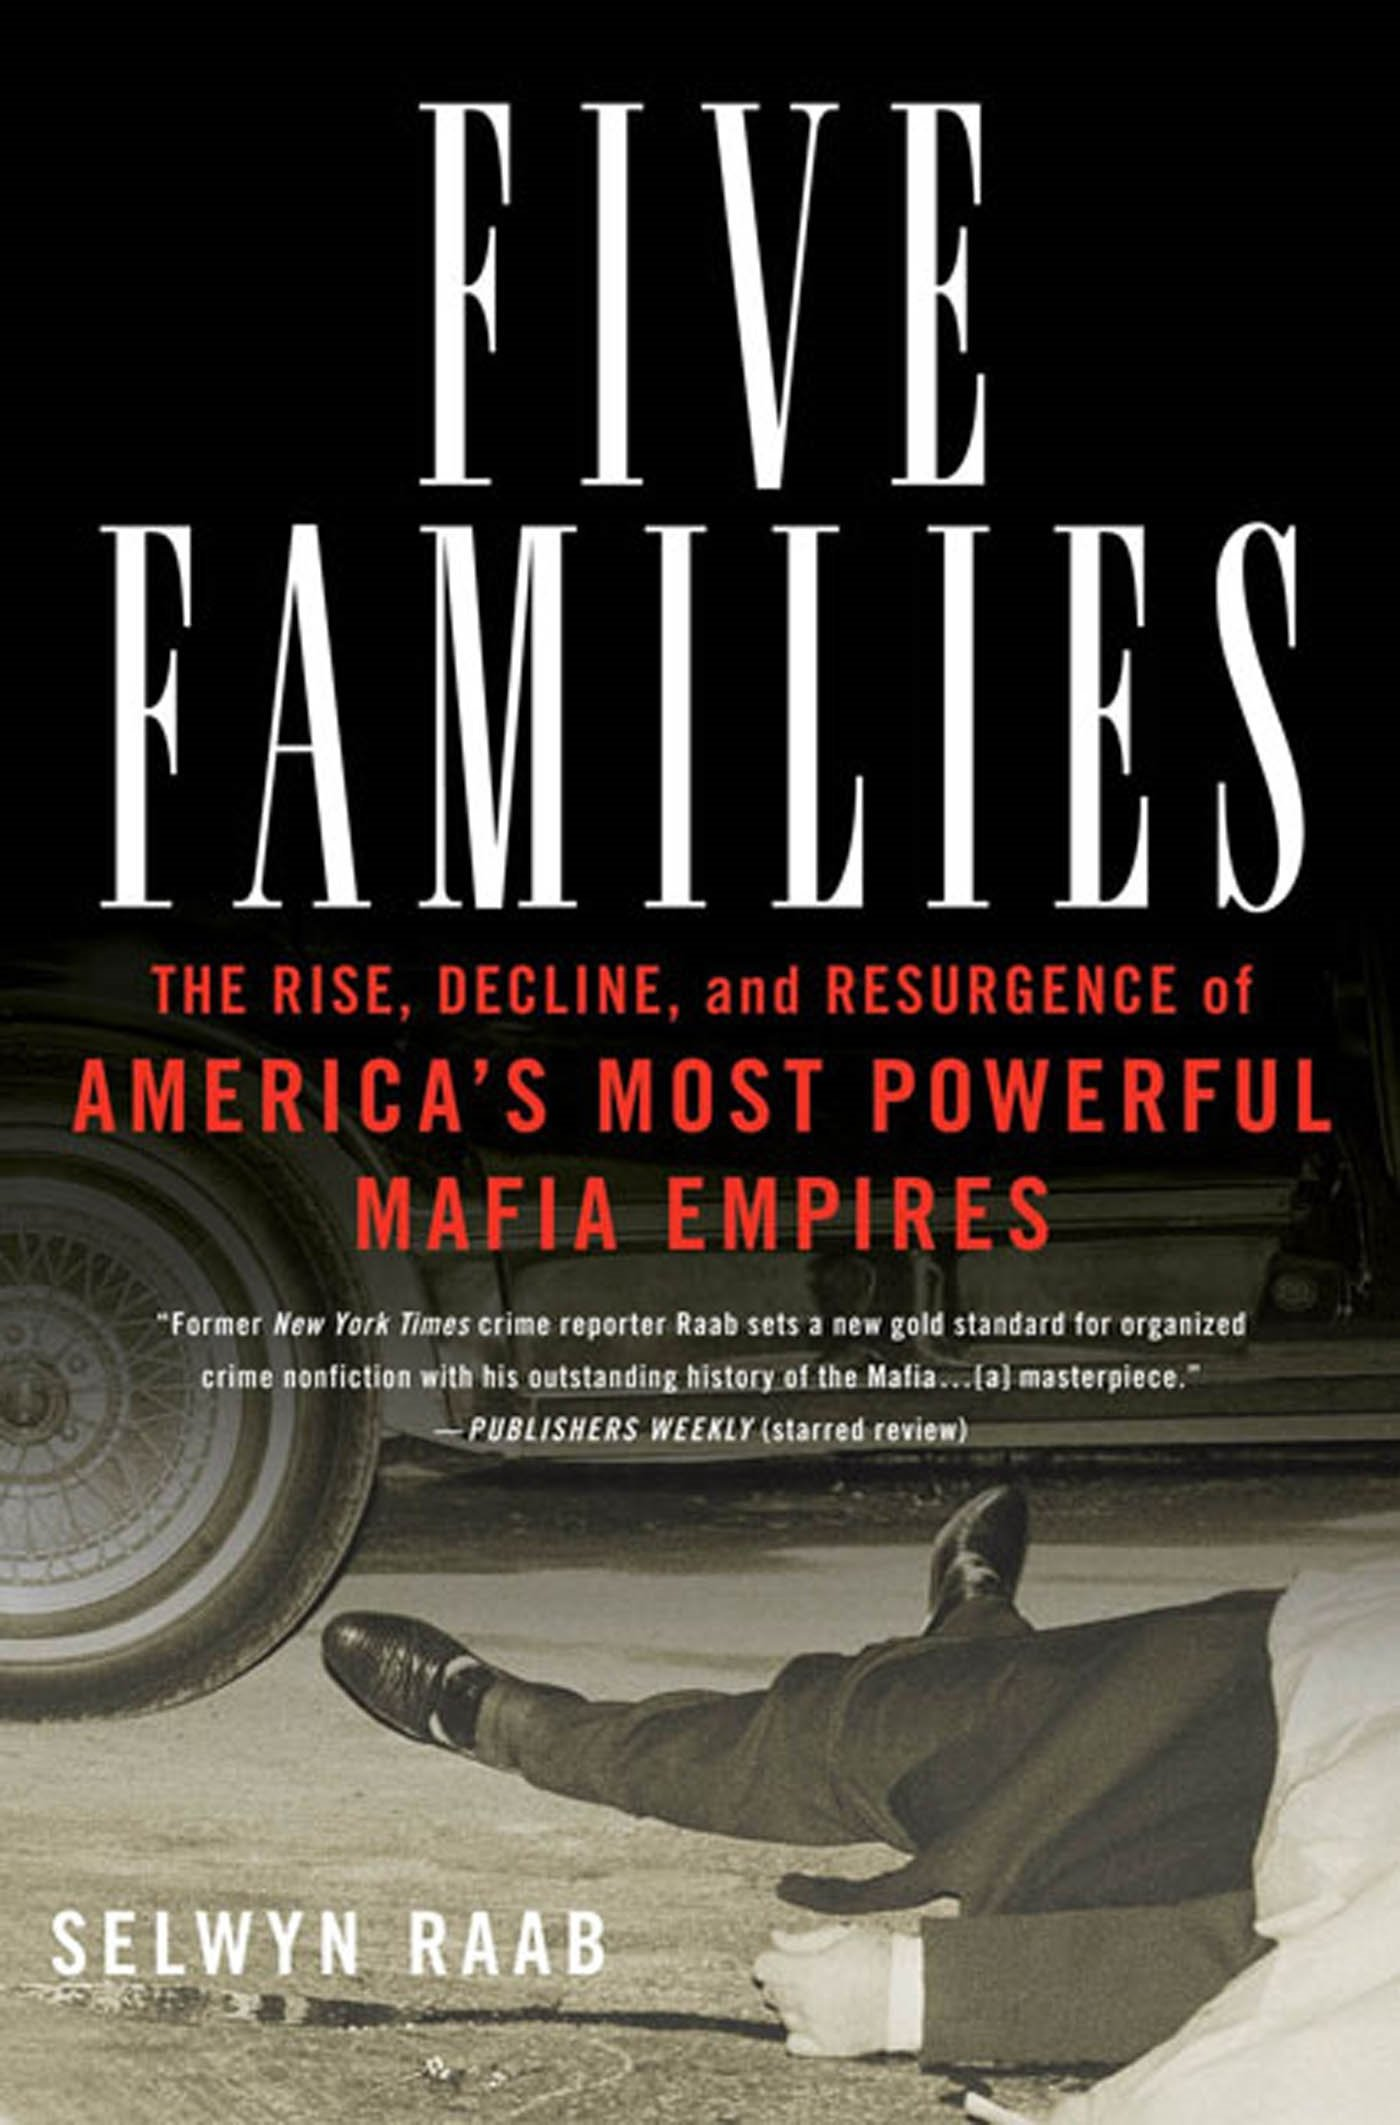 Download Five Families The Rise, Decline, and Resurgence of America's Most Powerful Mafia Empiers ebook